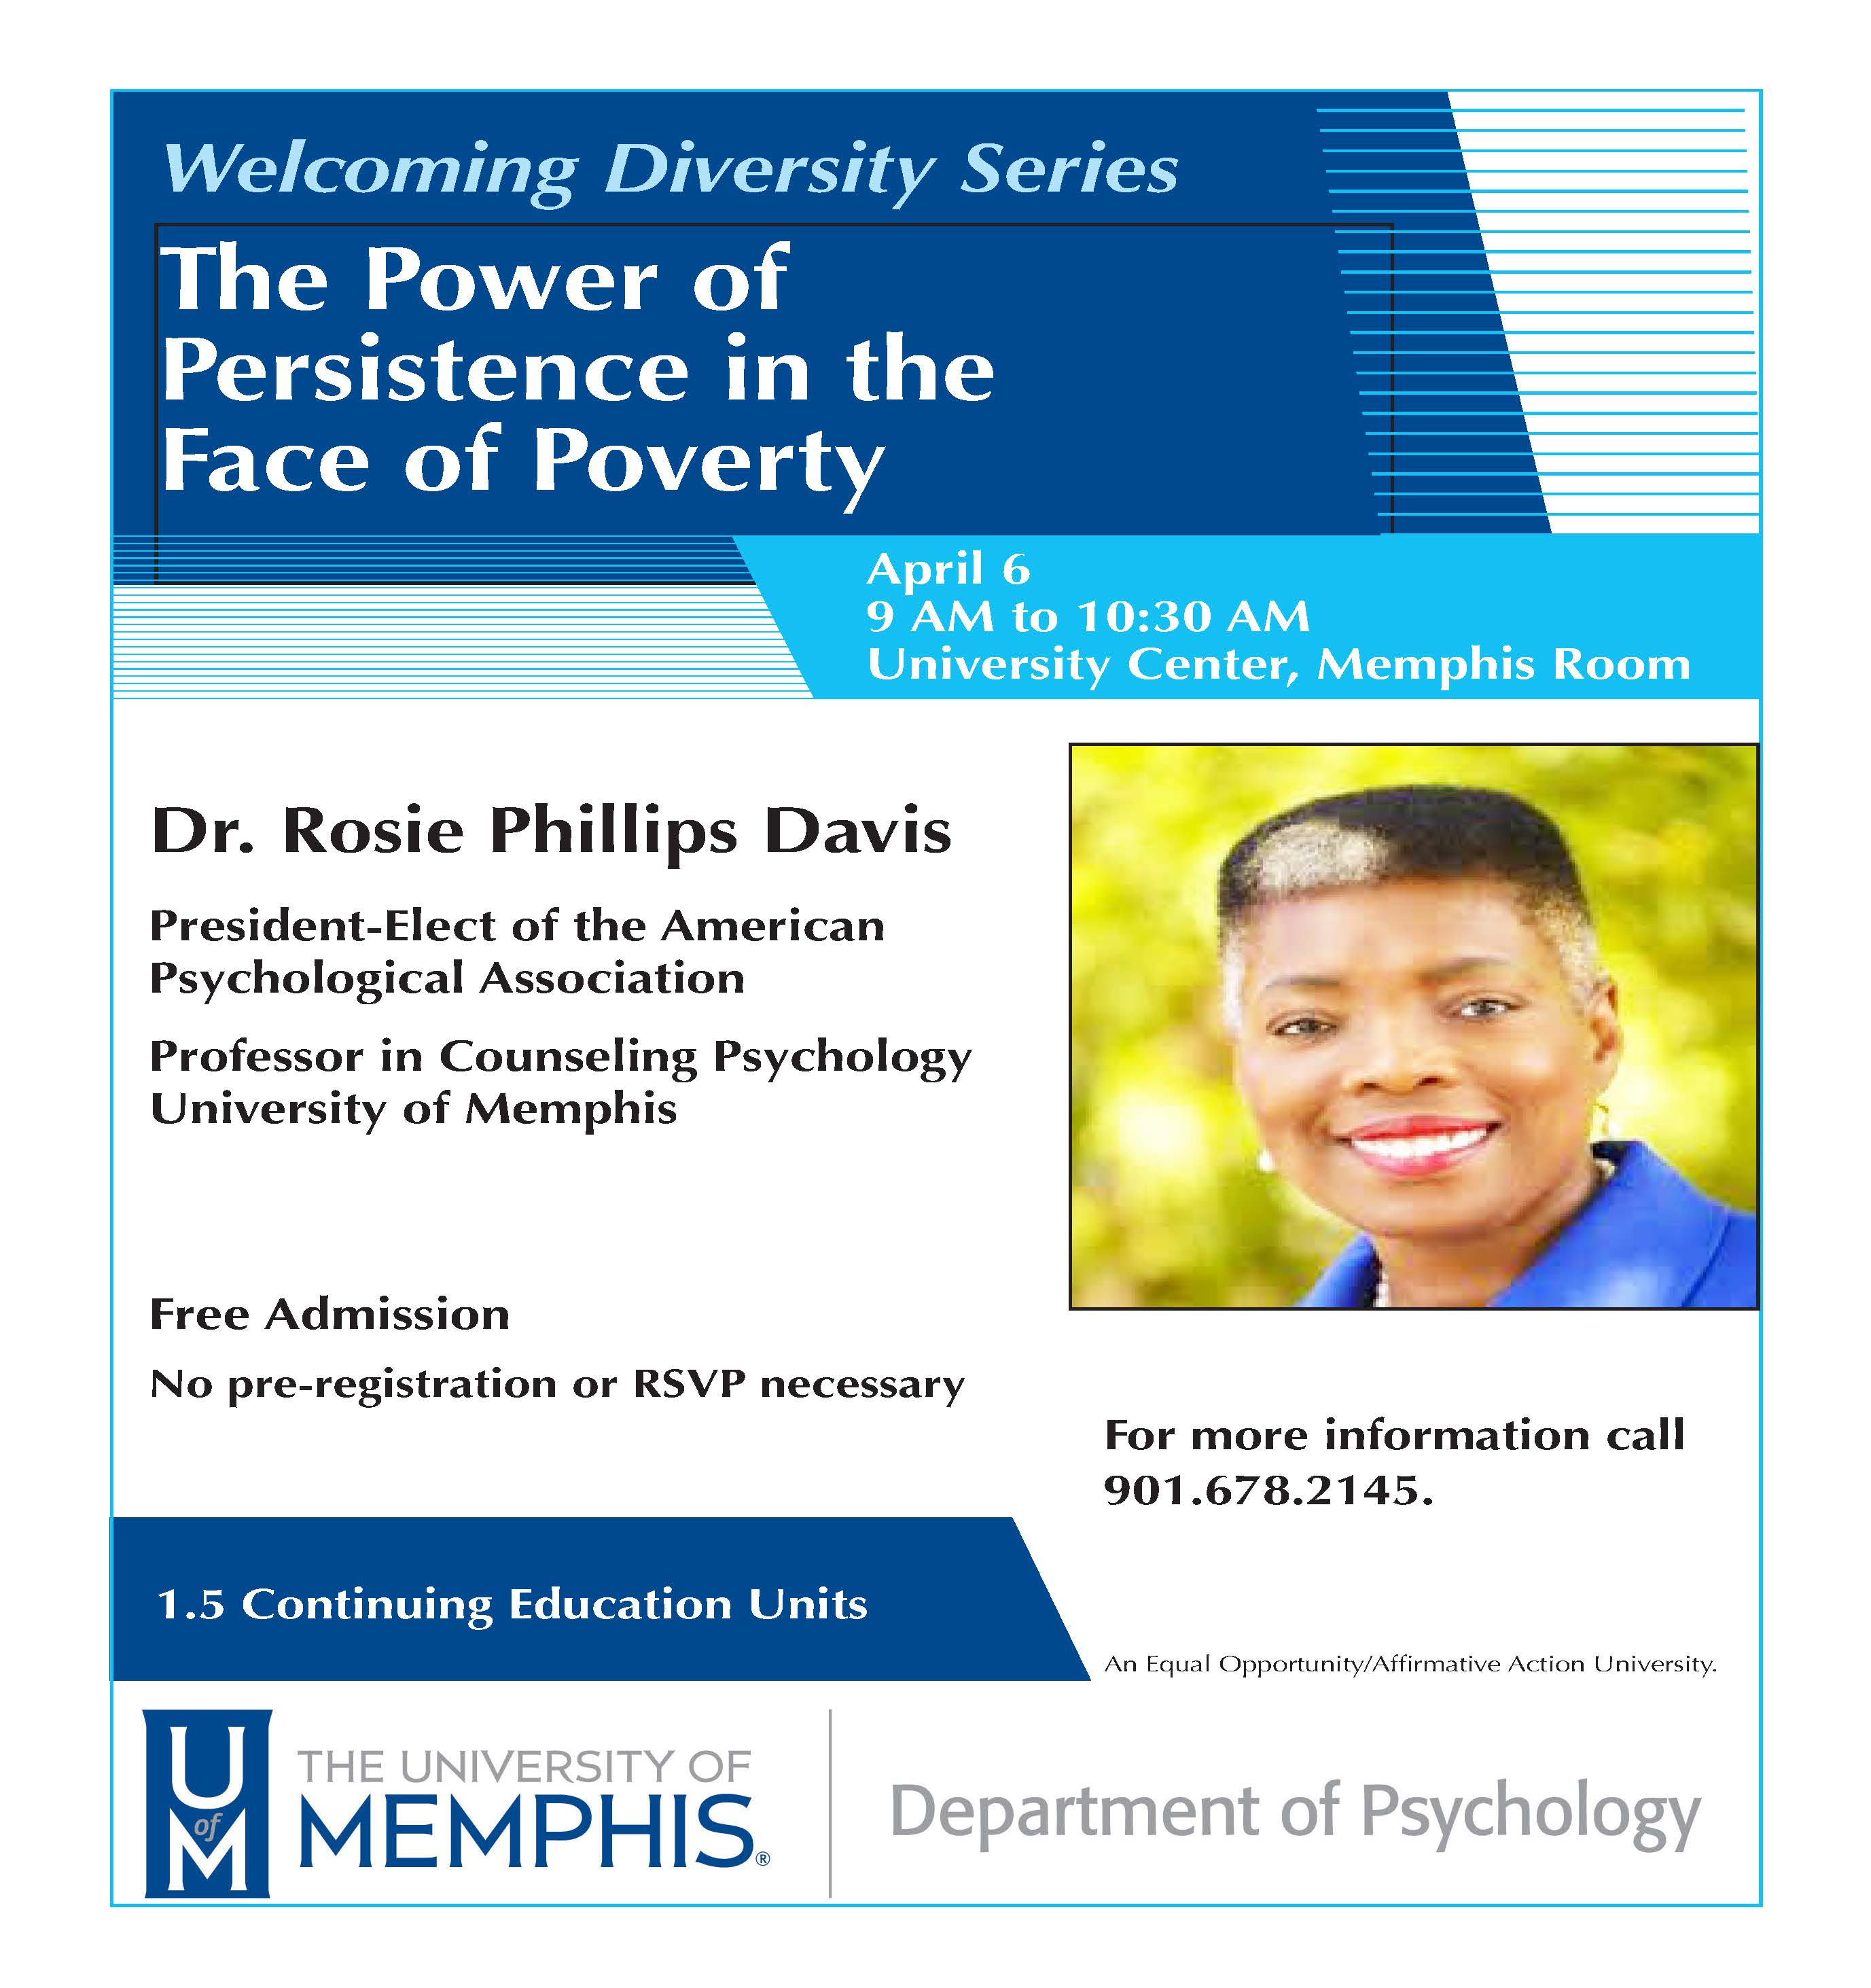 Dr. Rosie Phillips Davis